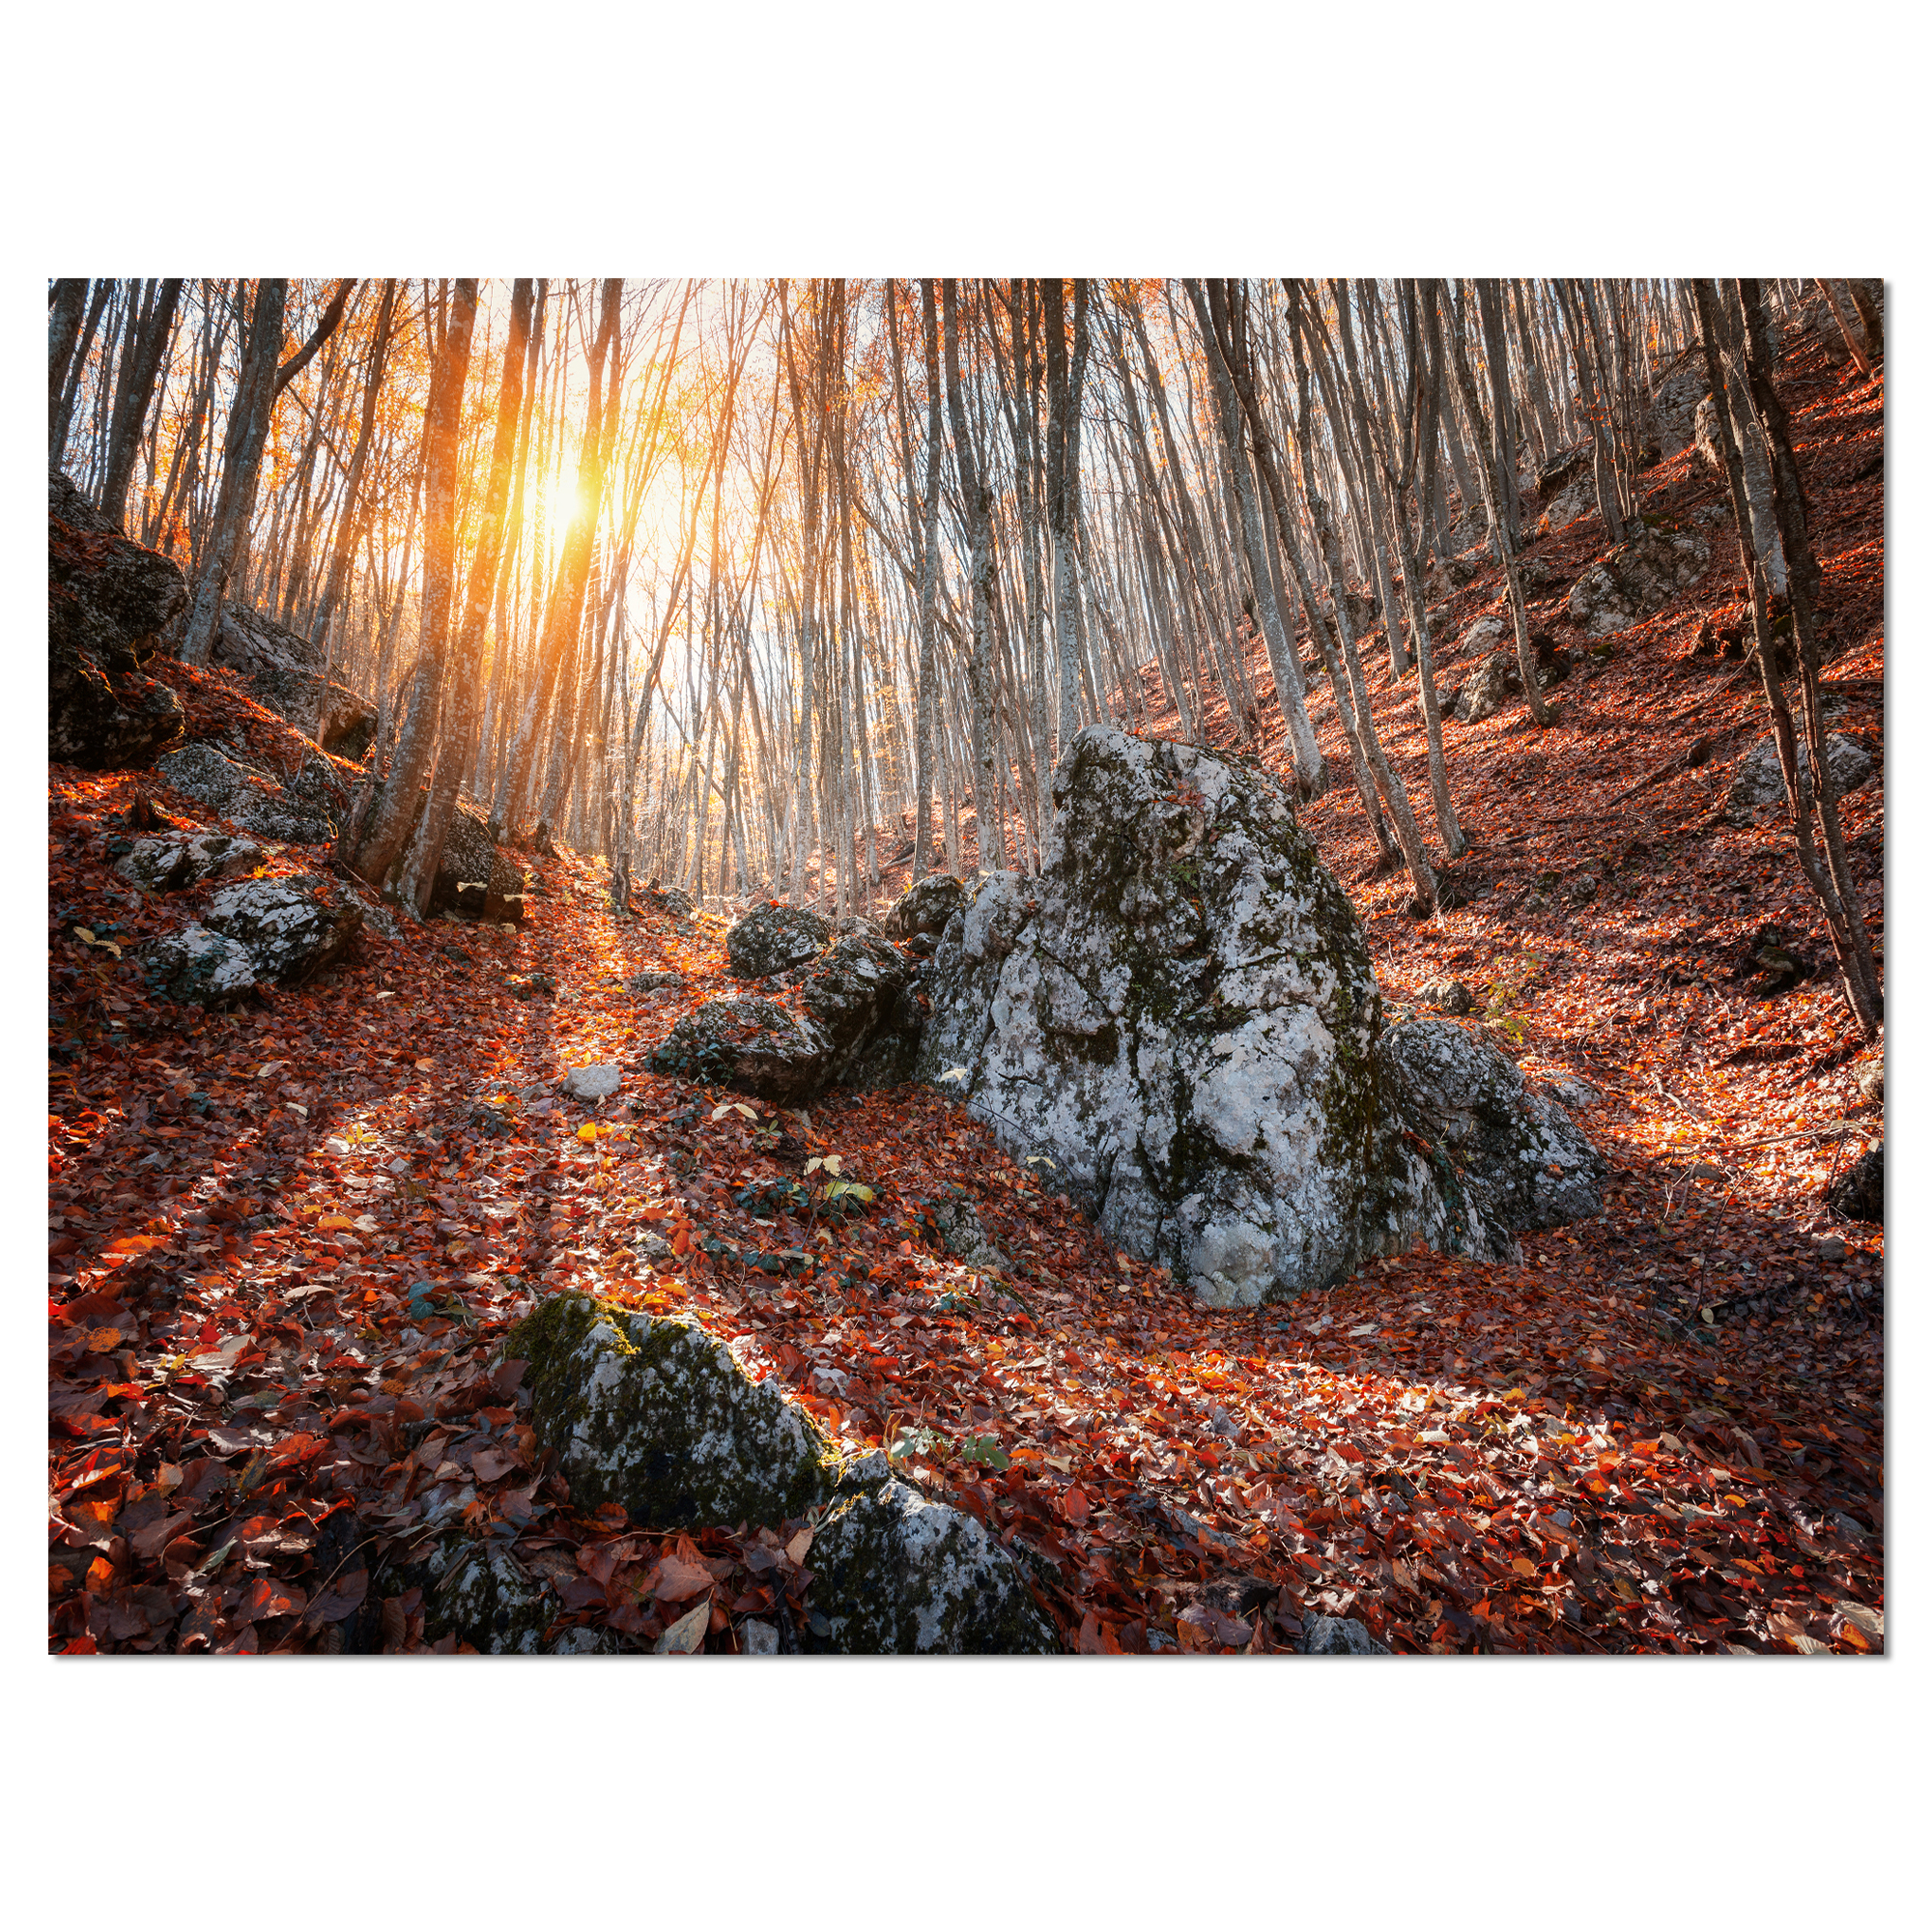 Rocky Red Autumn Forest - Landscape Photography Canvas Art Print - image 2 of 3